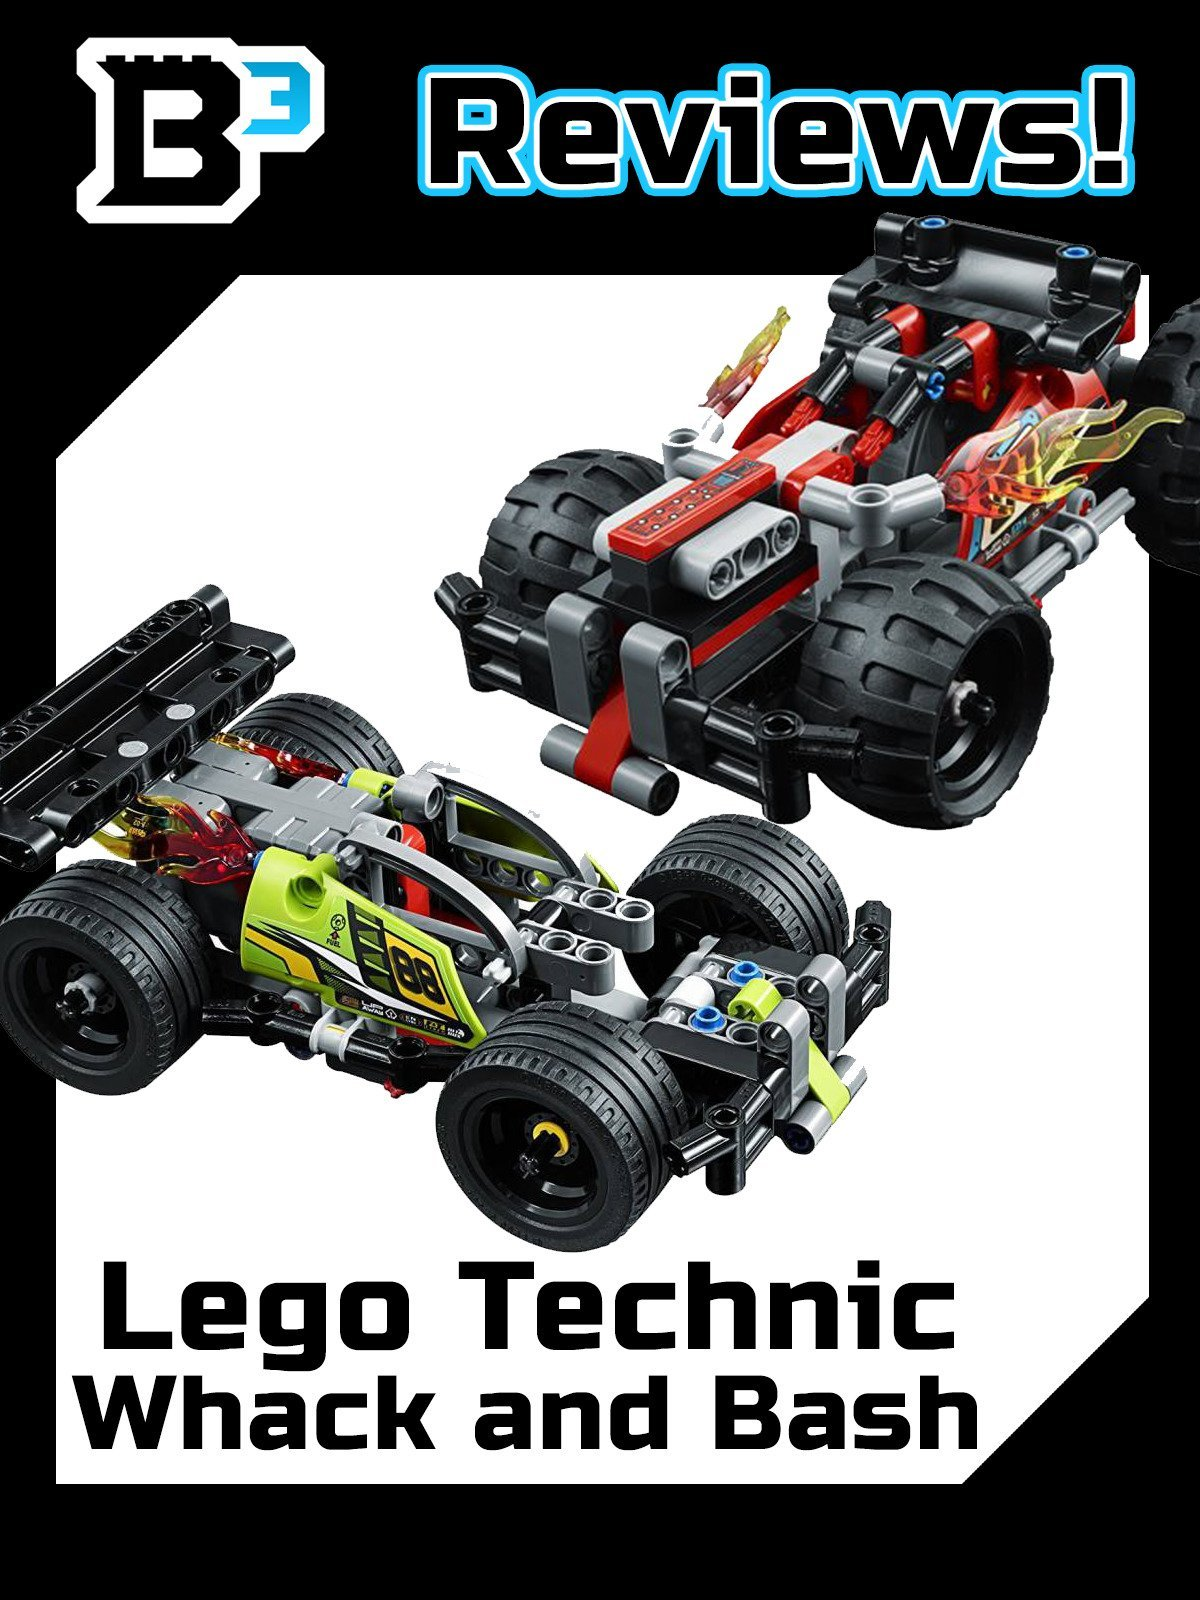 B3 Reviews! Lego Technic Whack and Bash